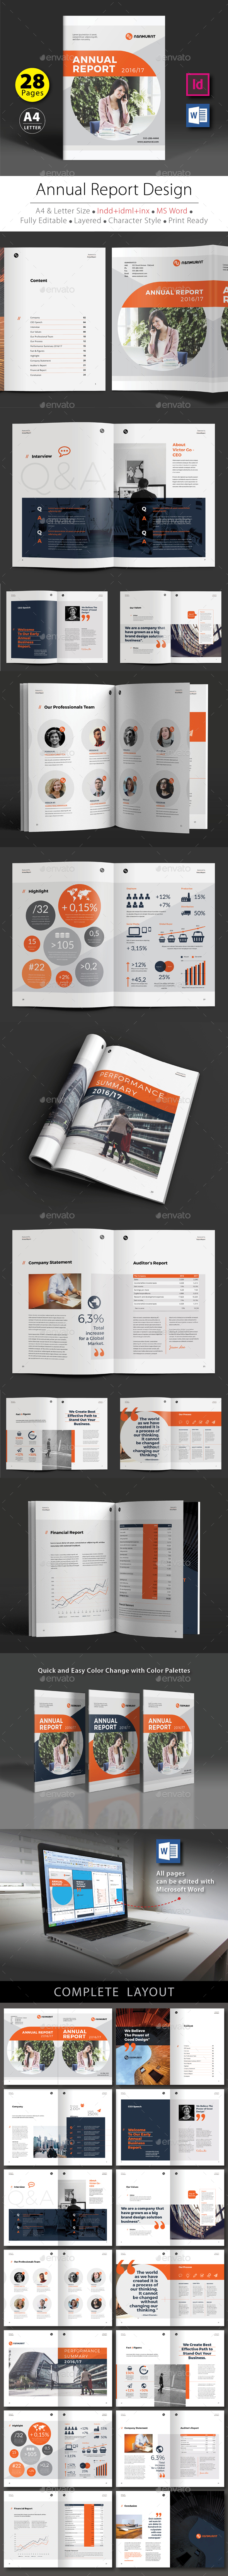 Annual Report Design Template V.4 - Corporate Brochures